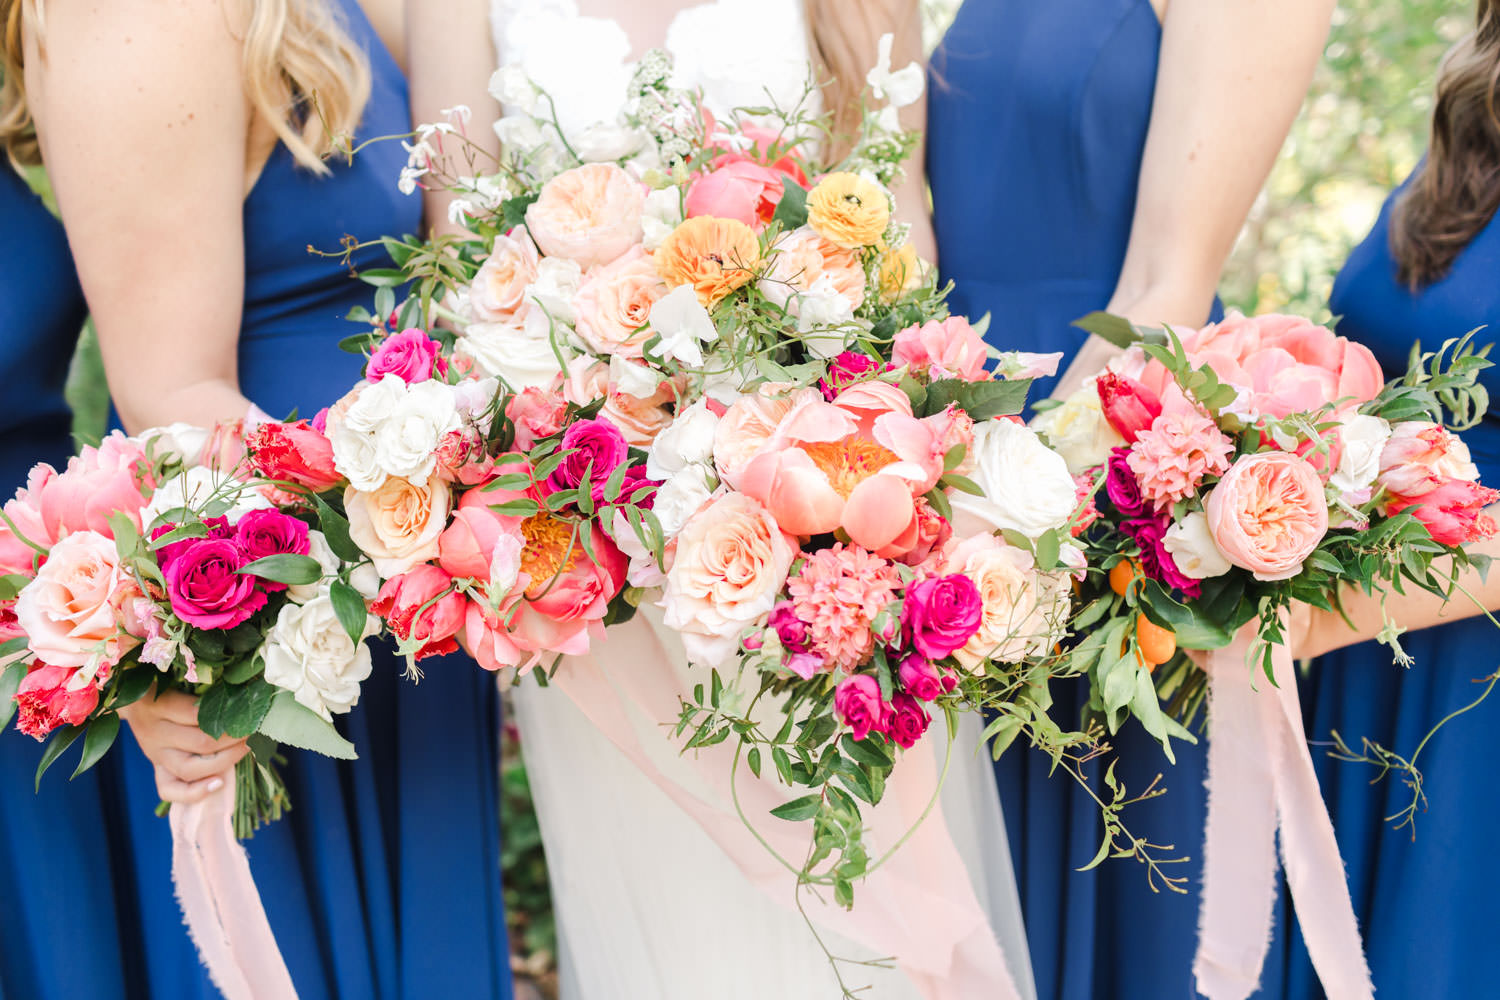 Bride with bridesmaids bouquets for a San Diego Botanic Garden wedding with blue and pink colors, Cavin Elizabeth Photography